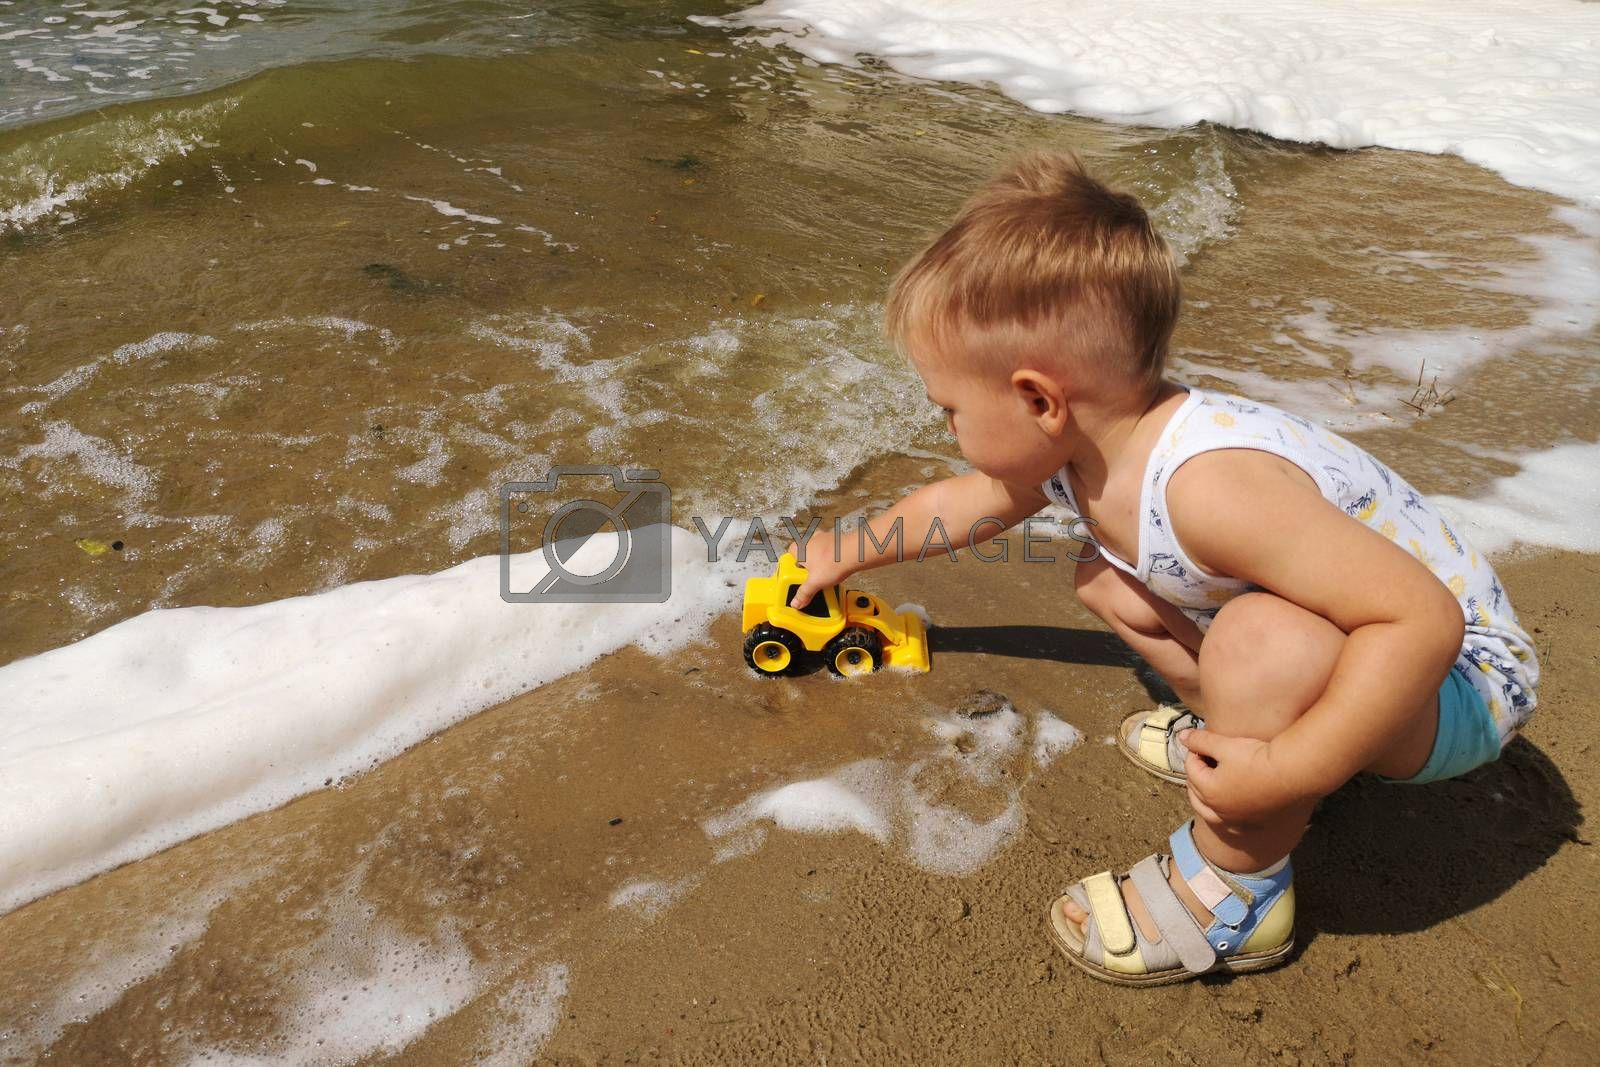 A cute little boy plays on the shore of the lake with a bright yellow toy car in the foam of the lake.Summer kids holiday concept. Rest on the shore.